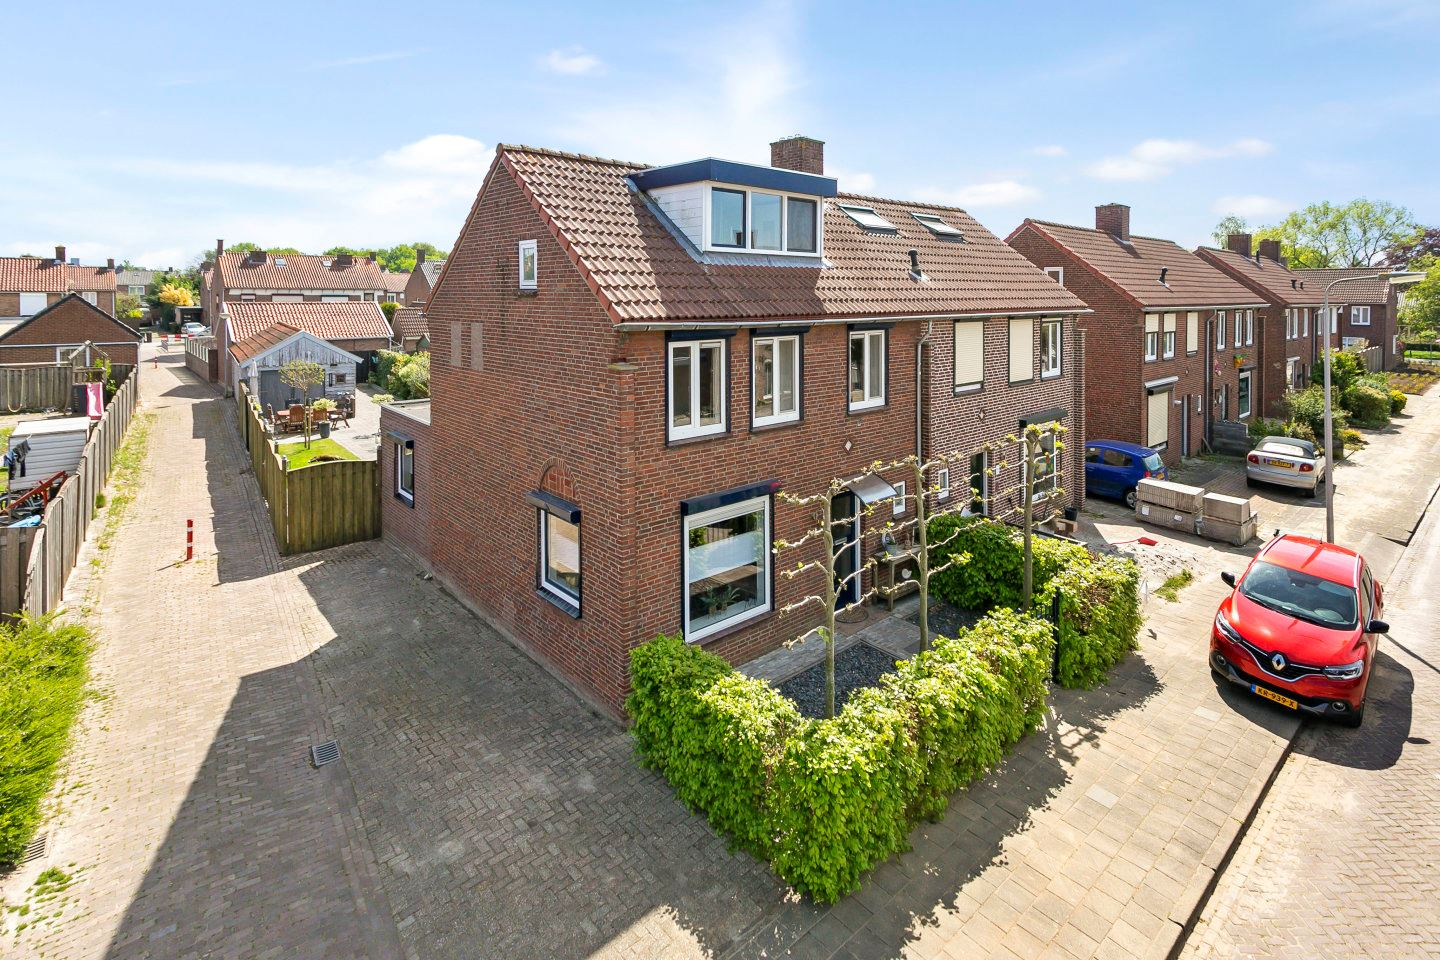 View photo 1 of Philips Willemstraat 29